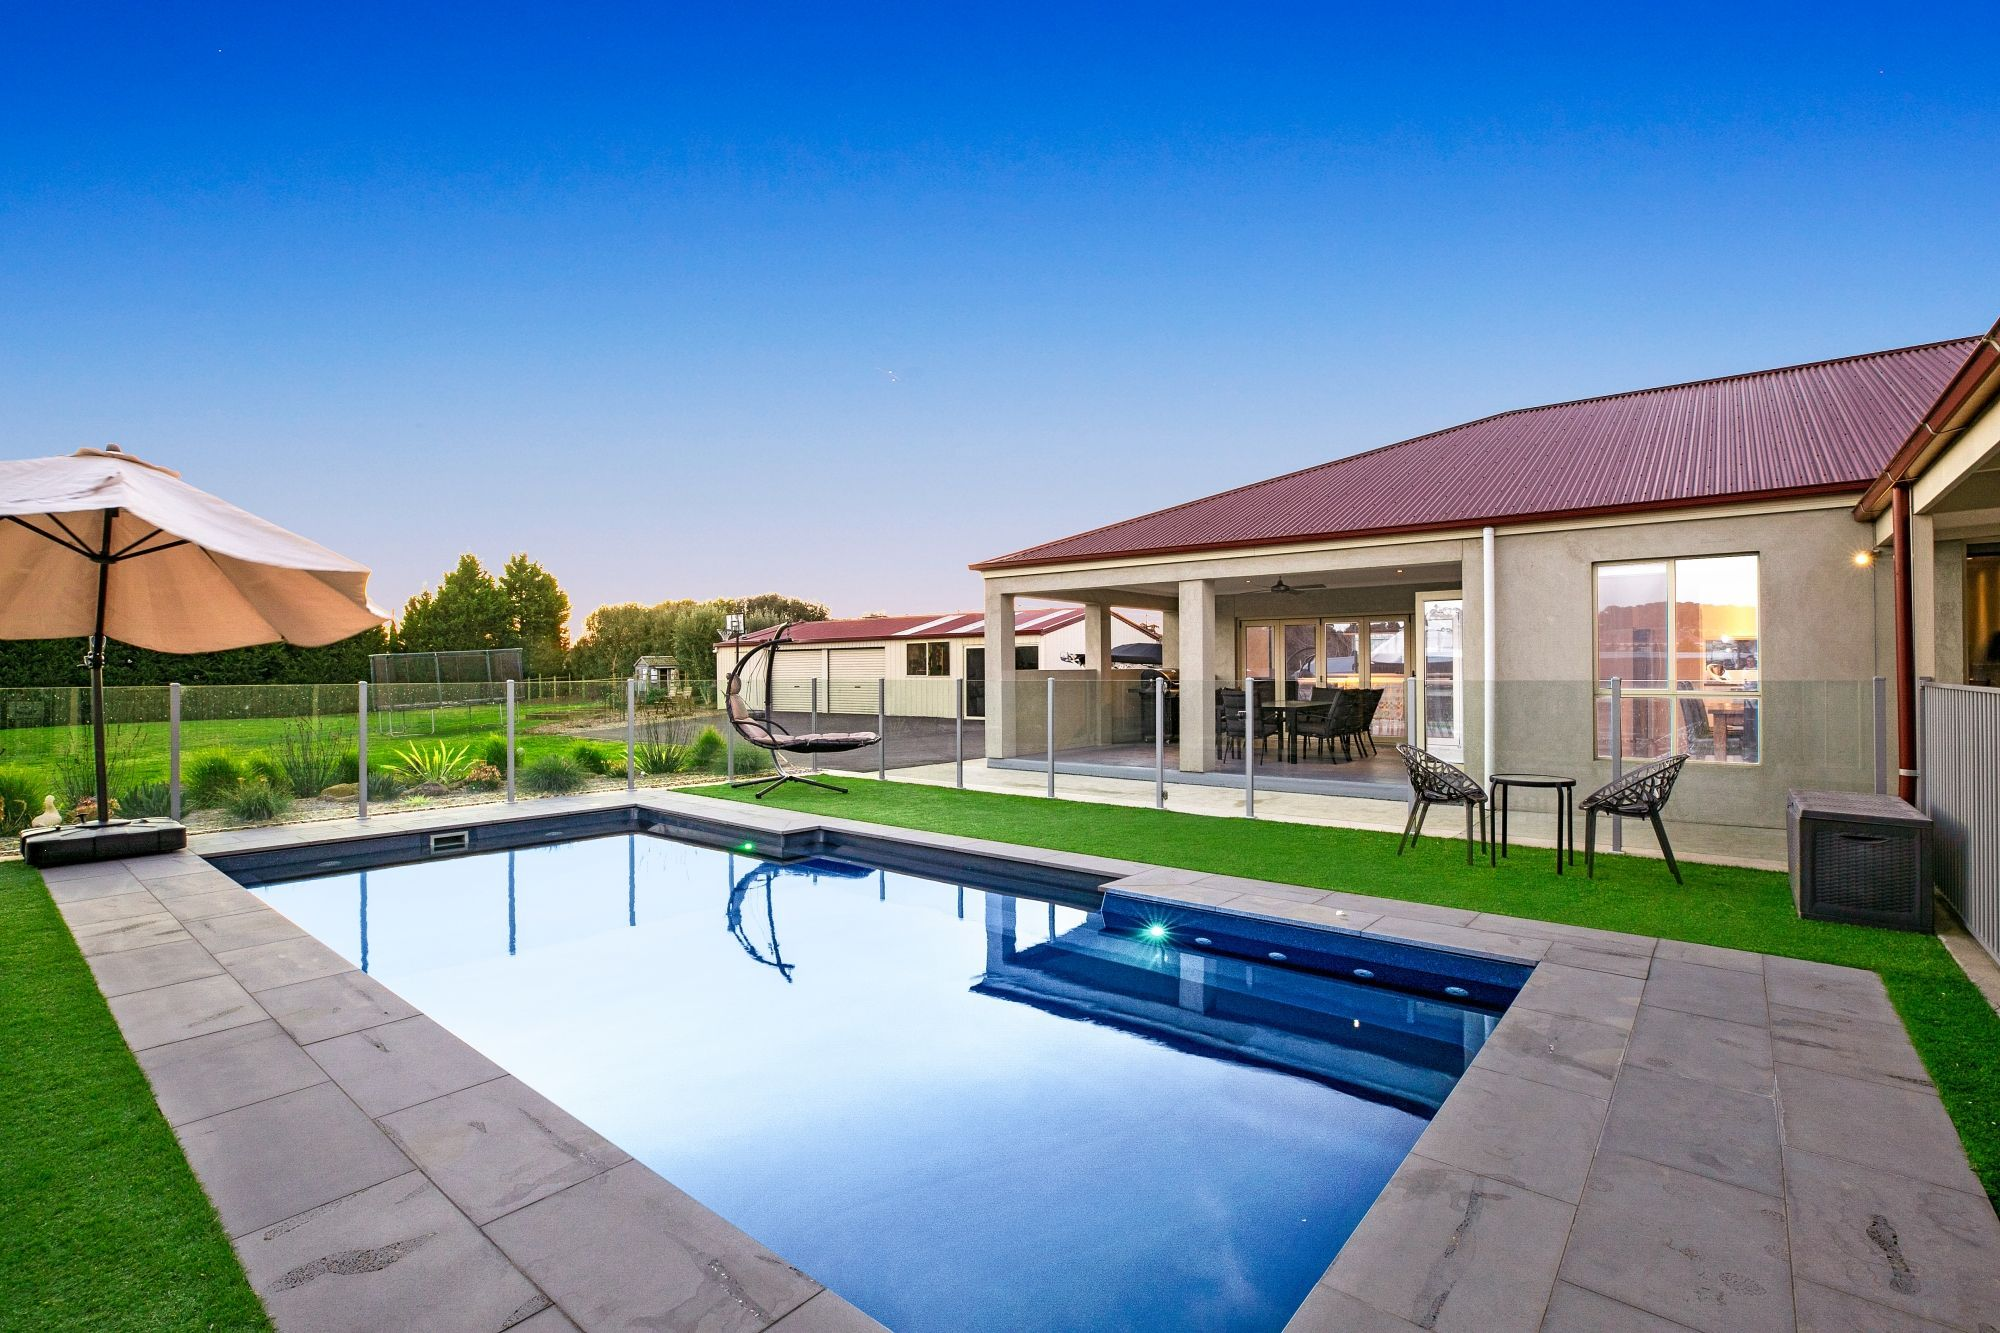 59-61 Cemetery Road, Drysdale VIC 3222